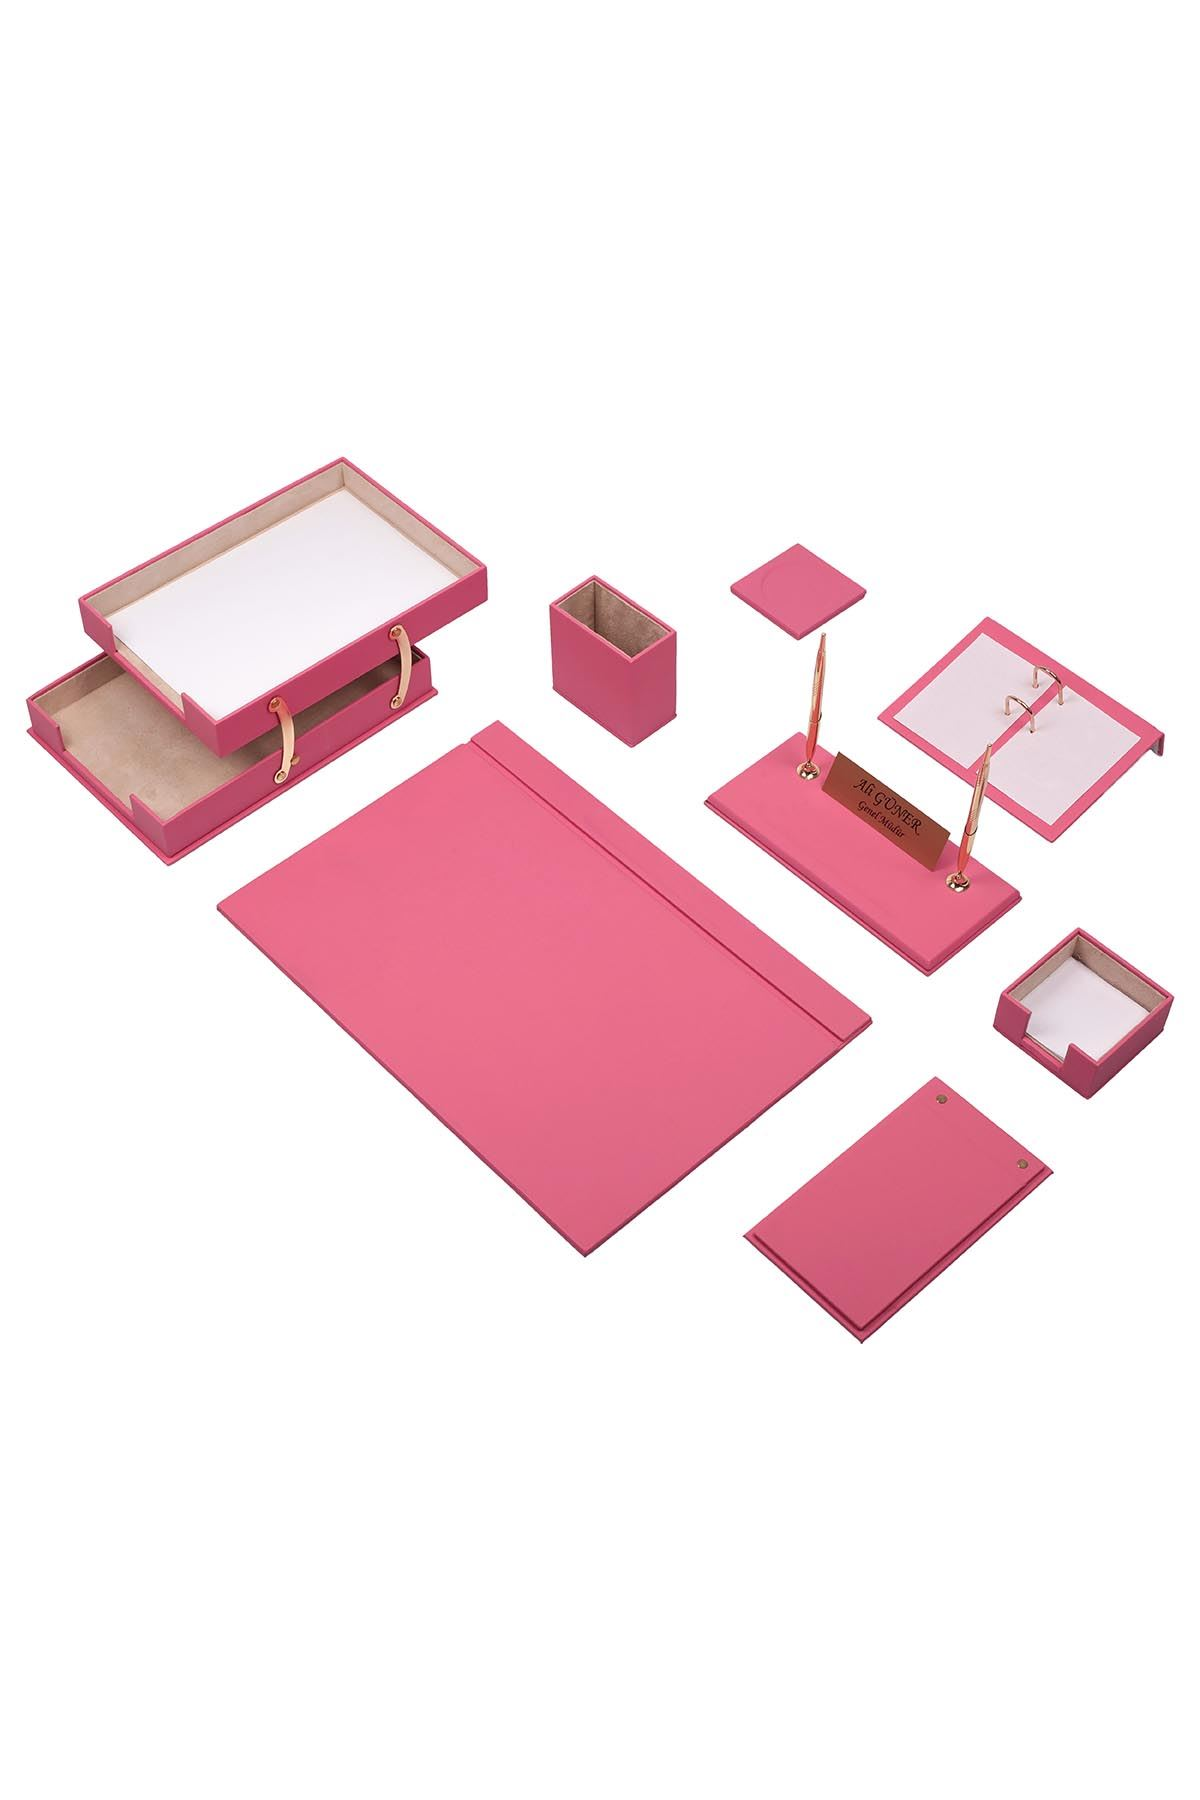 Making Your Own Desk Set Pink